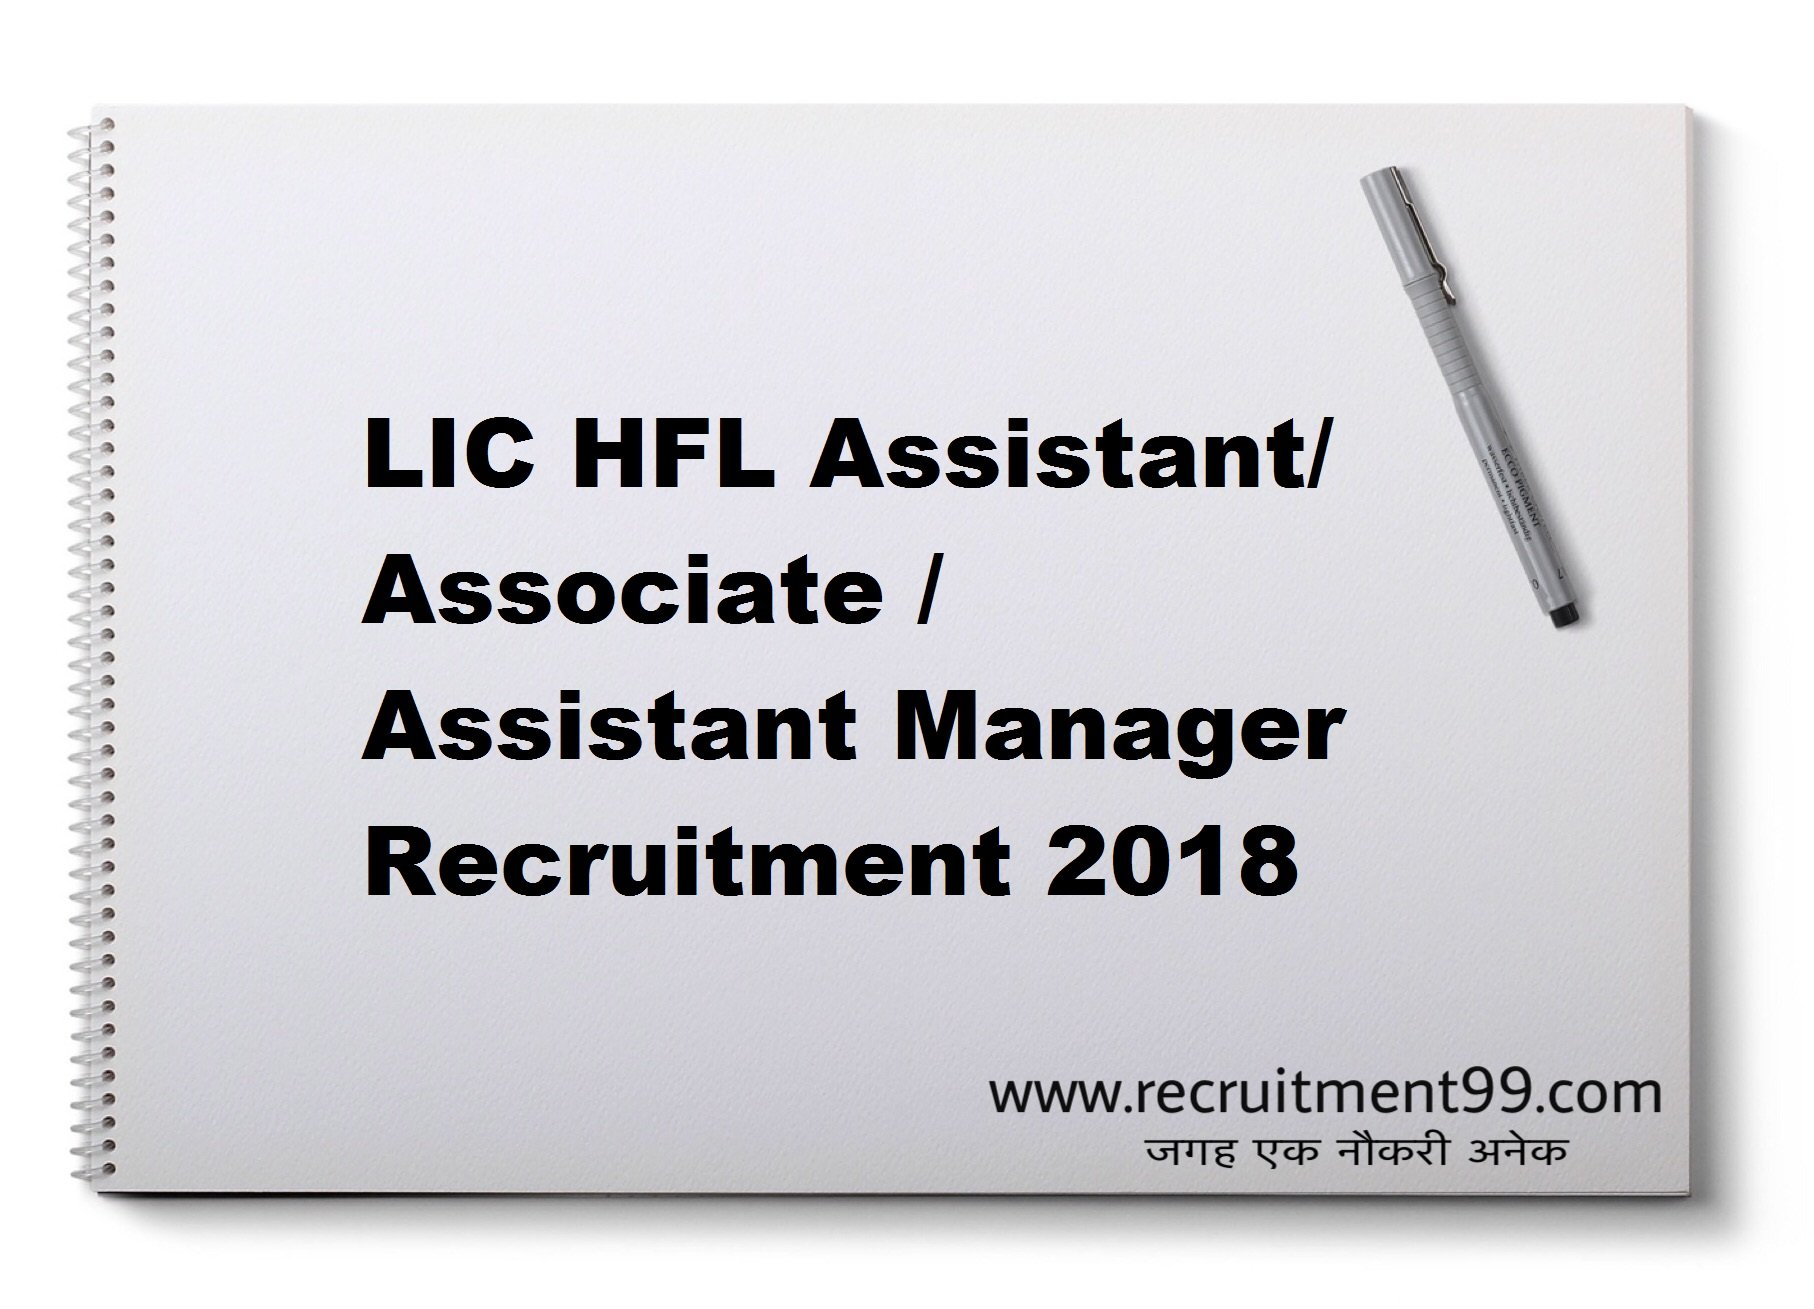 LIC HFL Assistant Associate Assistant Manager Recruitment Admit Card Result 2018